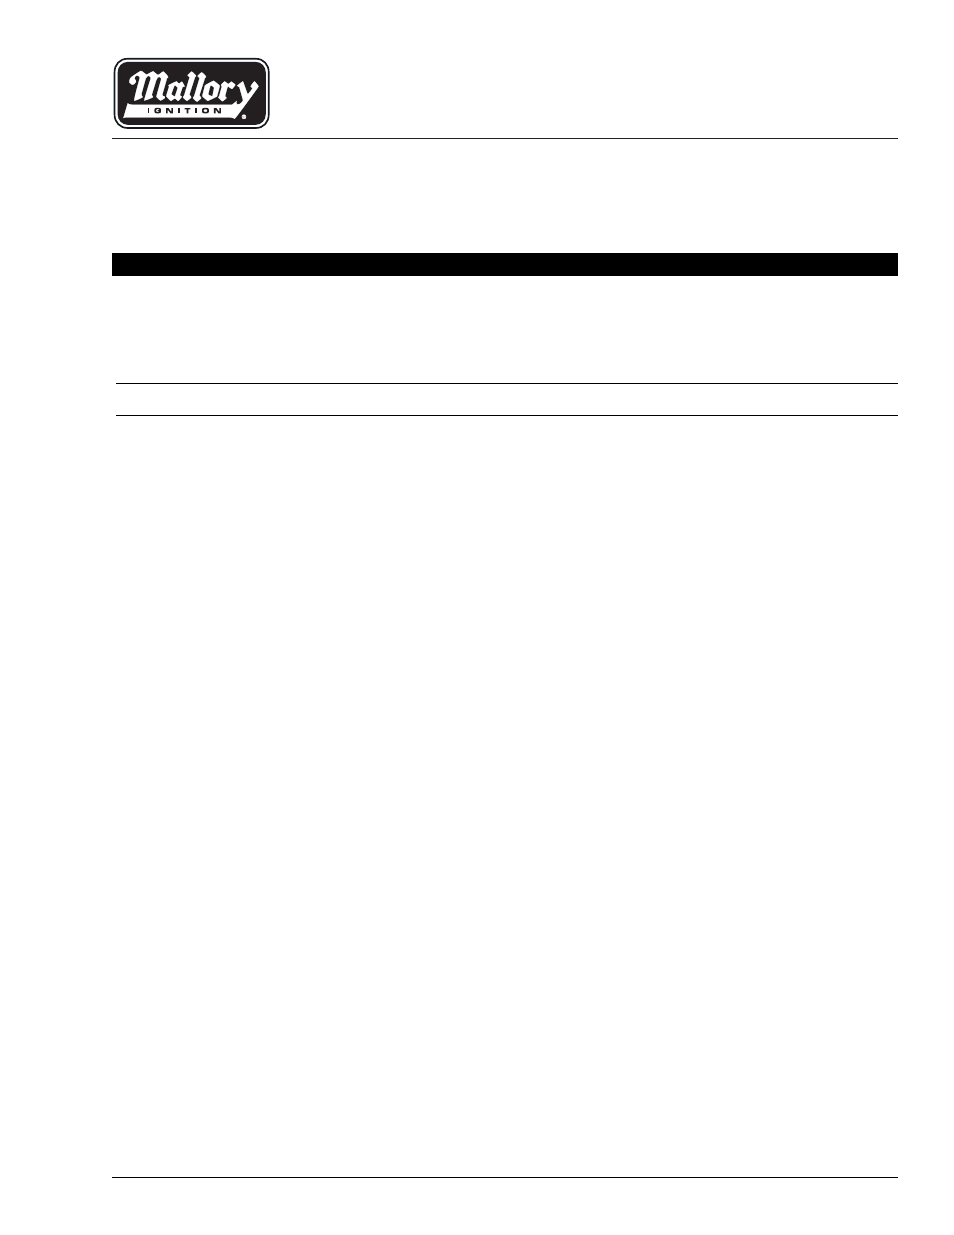 hight resolution of mallory ignition mallory unilite distributor user manual 13 pages also for mallory unilite distributor 605